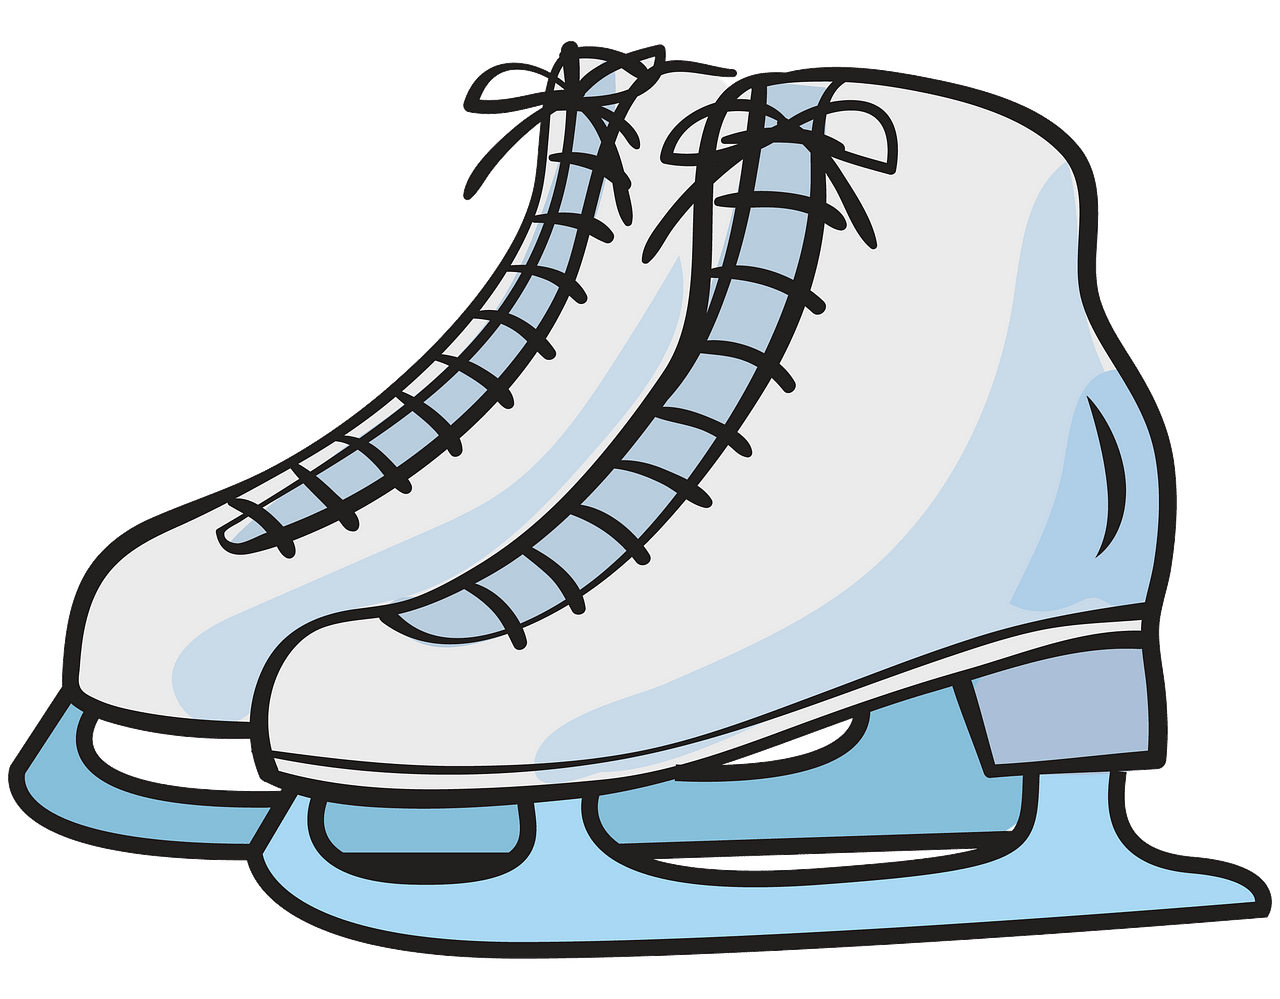 Ice skates clipart. Free download..